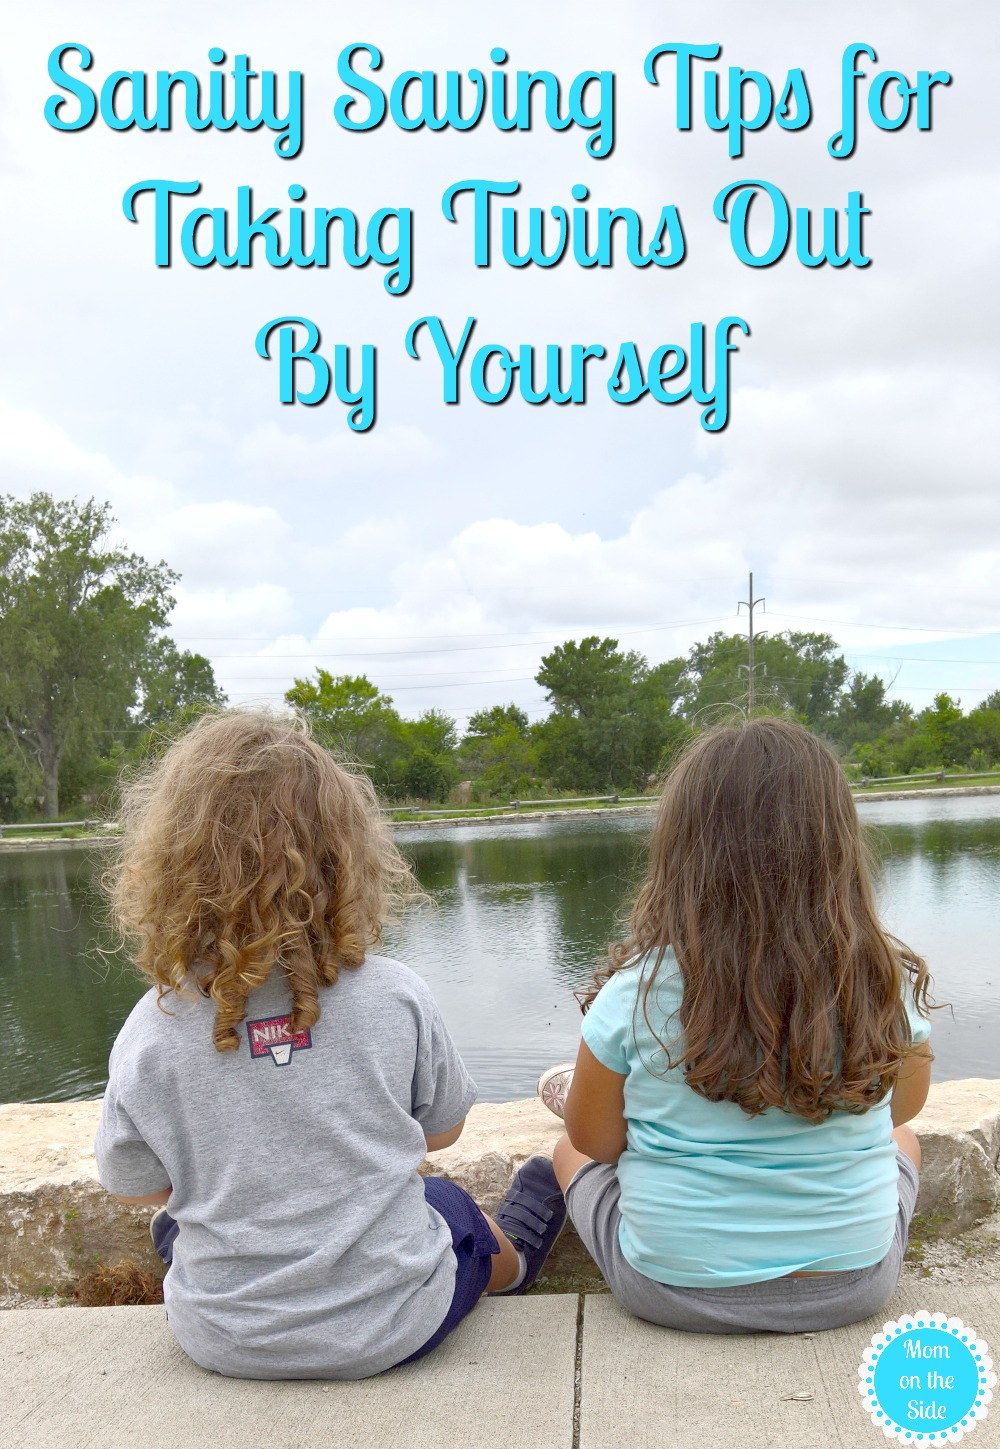 Taking twins out by yourself isn't impossible. I won't lie, it can be a bit overwhelming and stressful but these tips for taking twins out by yourself will help!